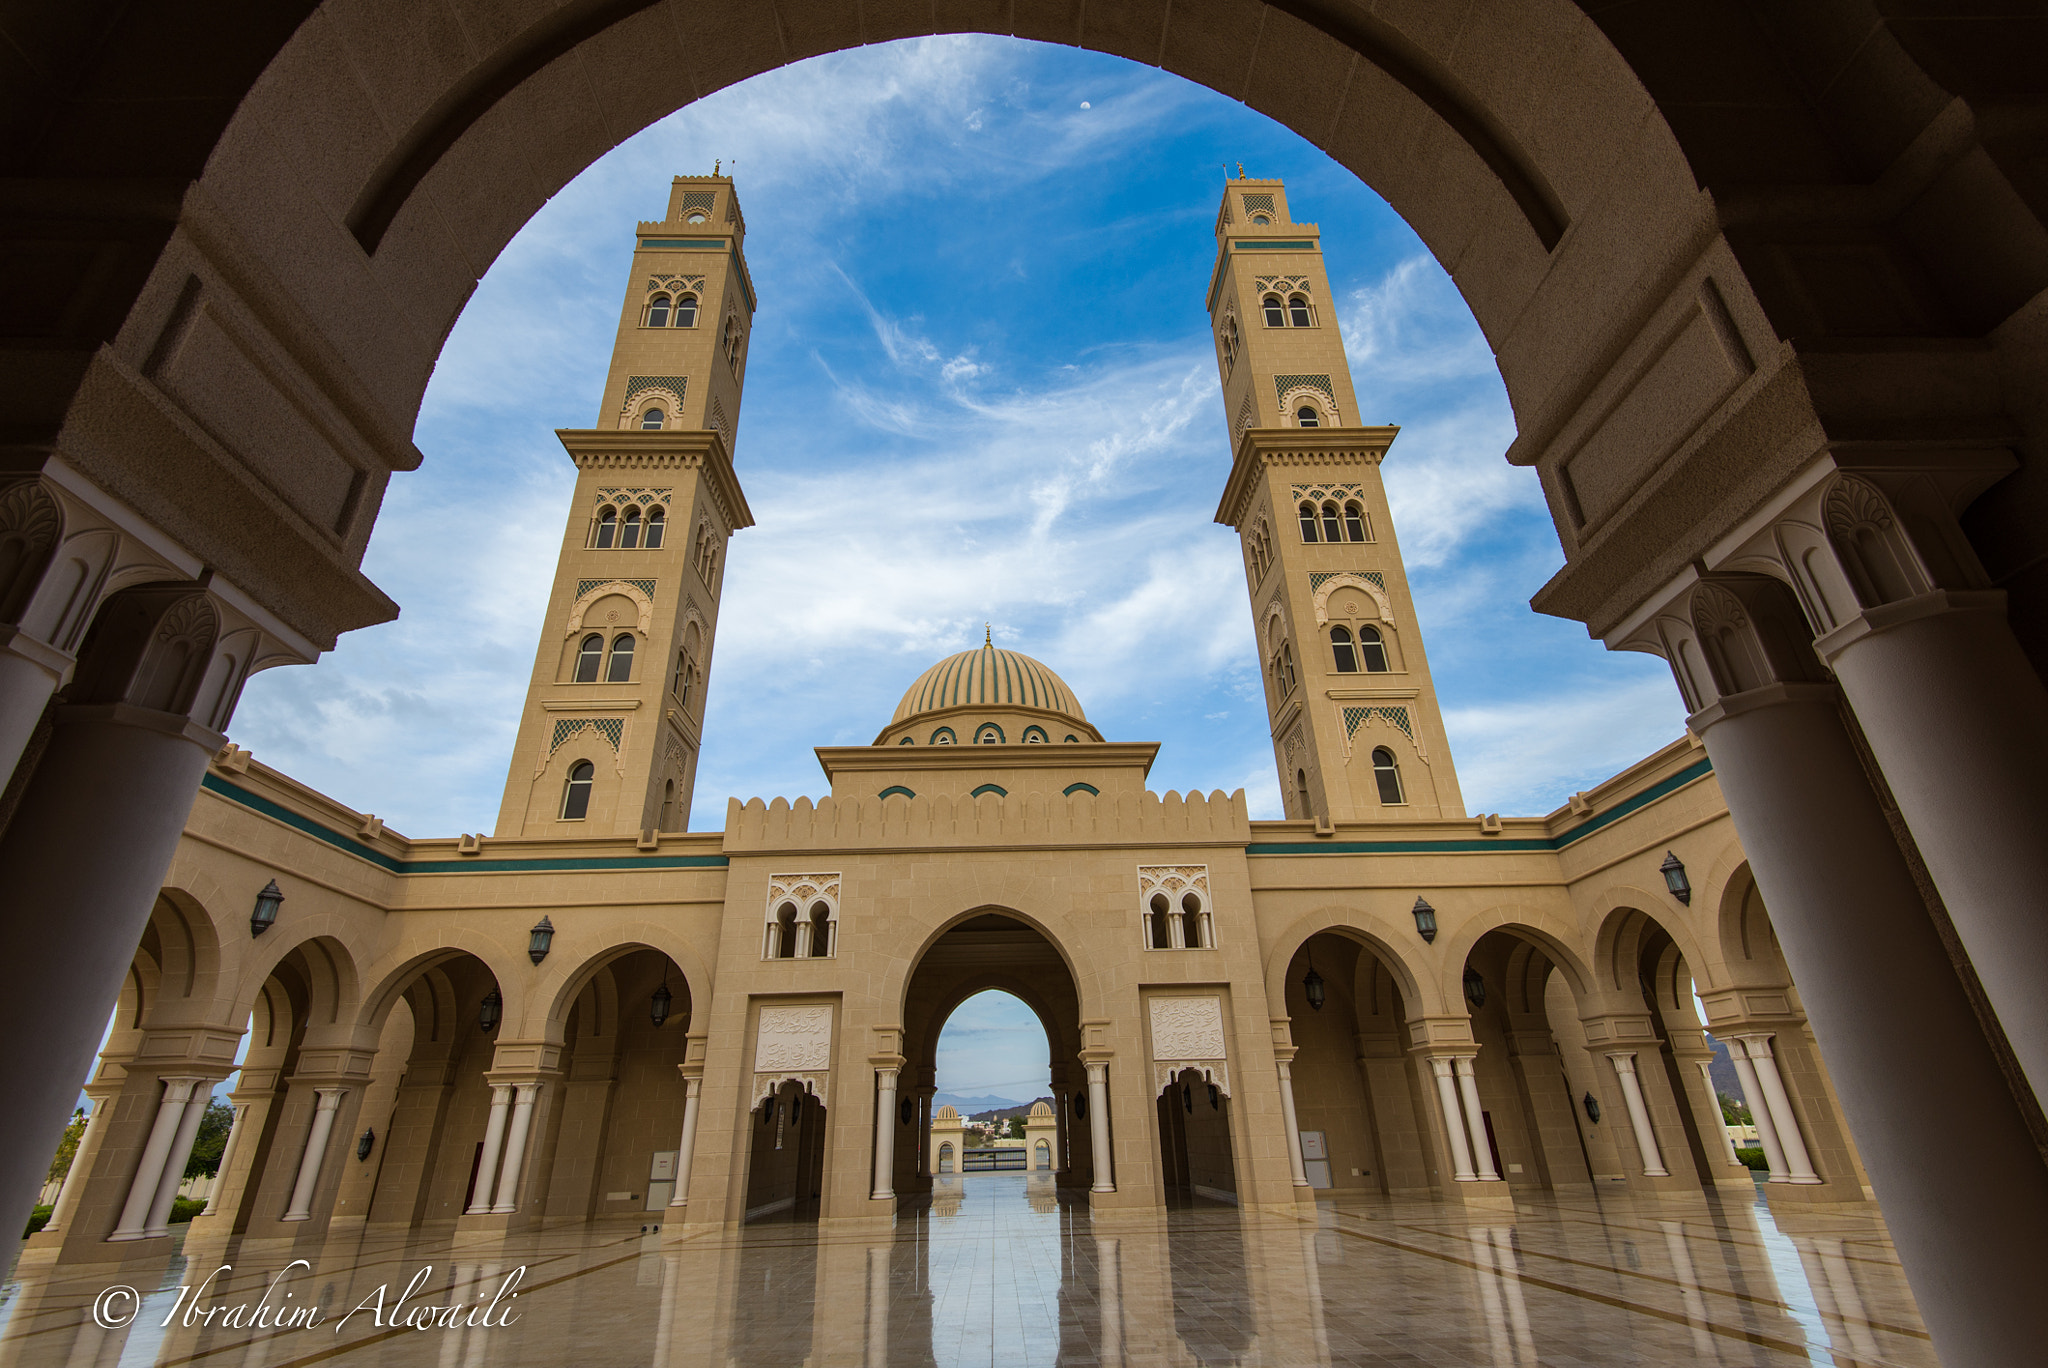 Photograph Bahla Grand Mosque - Oman by Ibrahim AlWaili on 500px